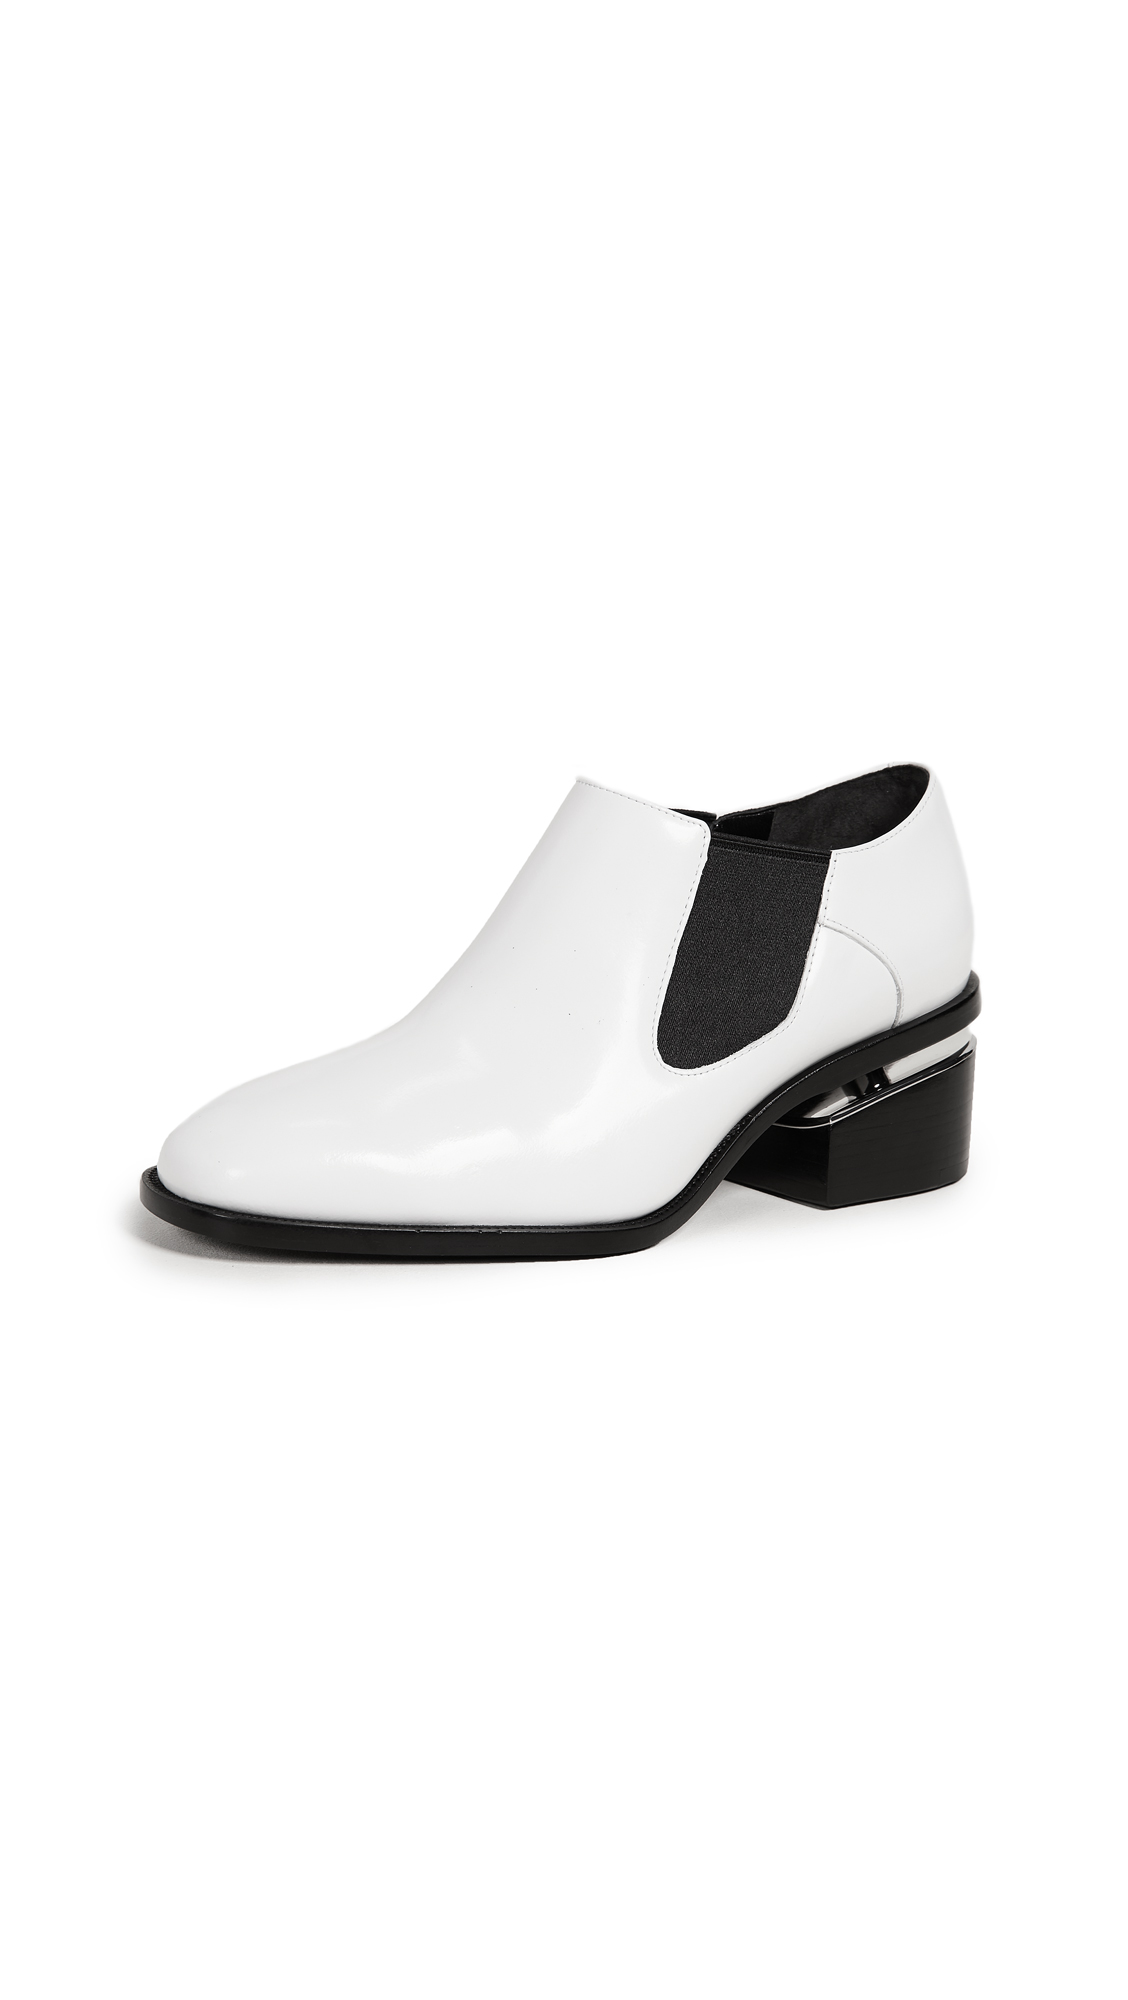 Alexander Wang Jae Booties - Optic White